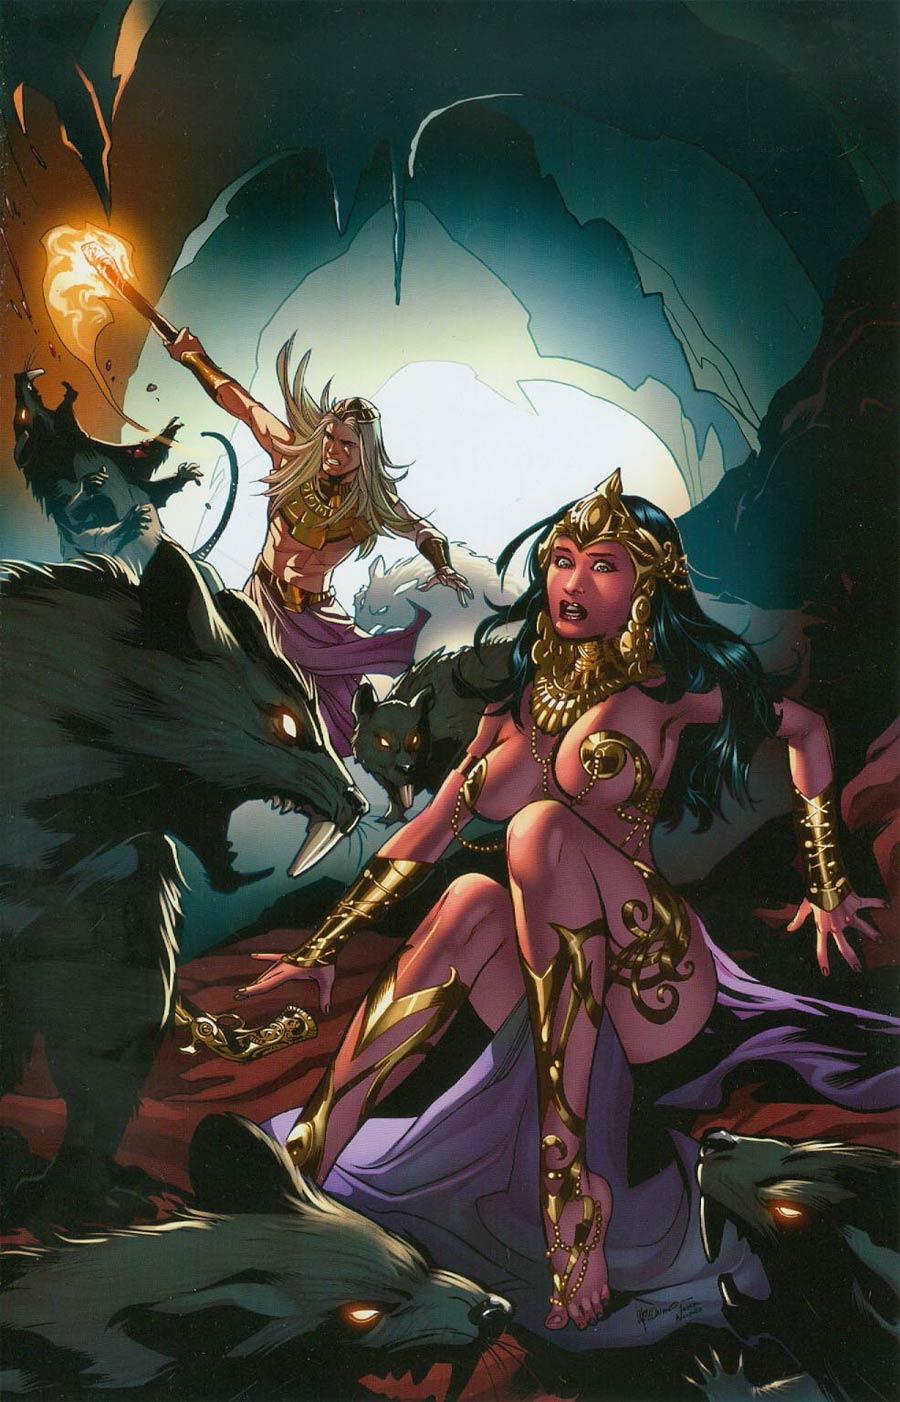 John Carter Warlord Of Mars Vol 2 #3 Cover G Incentive Emanuela Lupacchino Virgin Cover